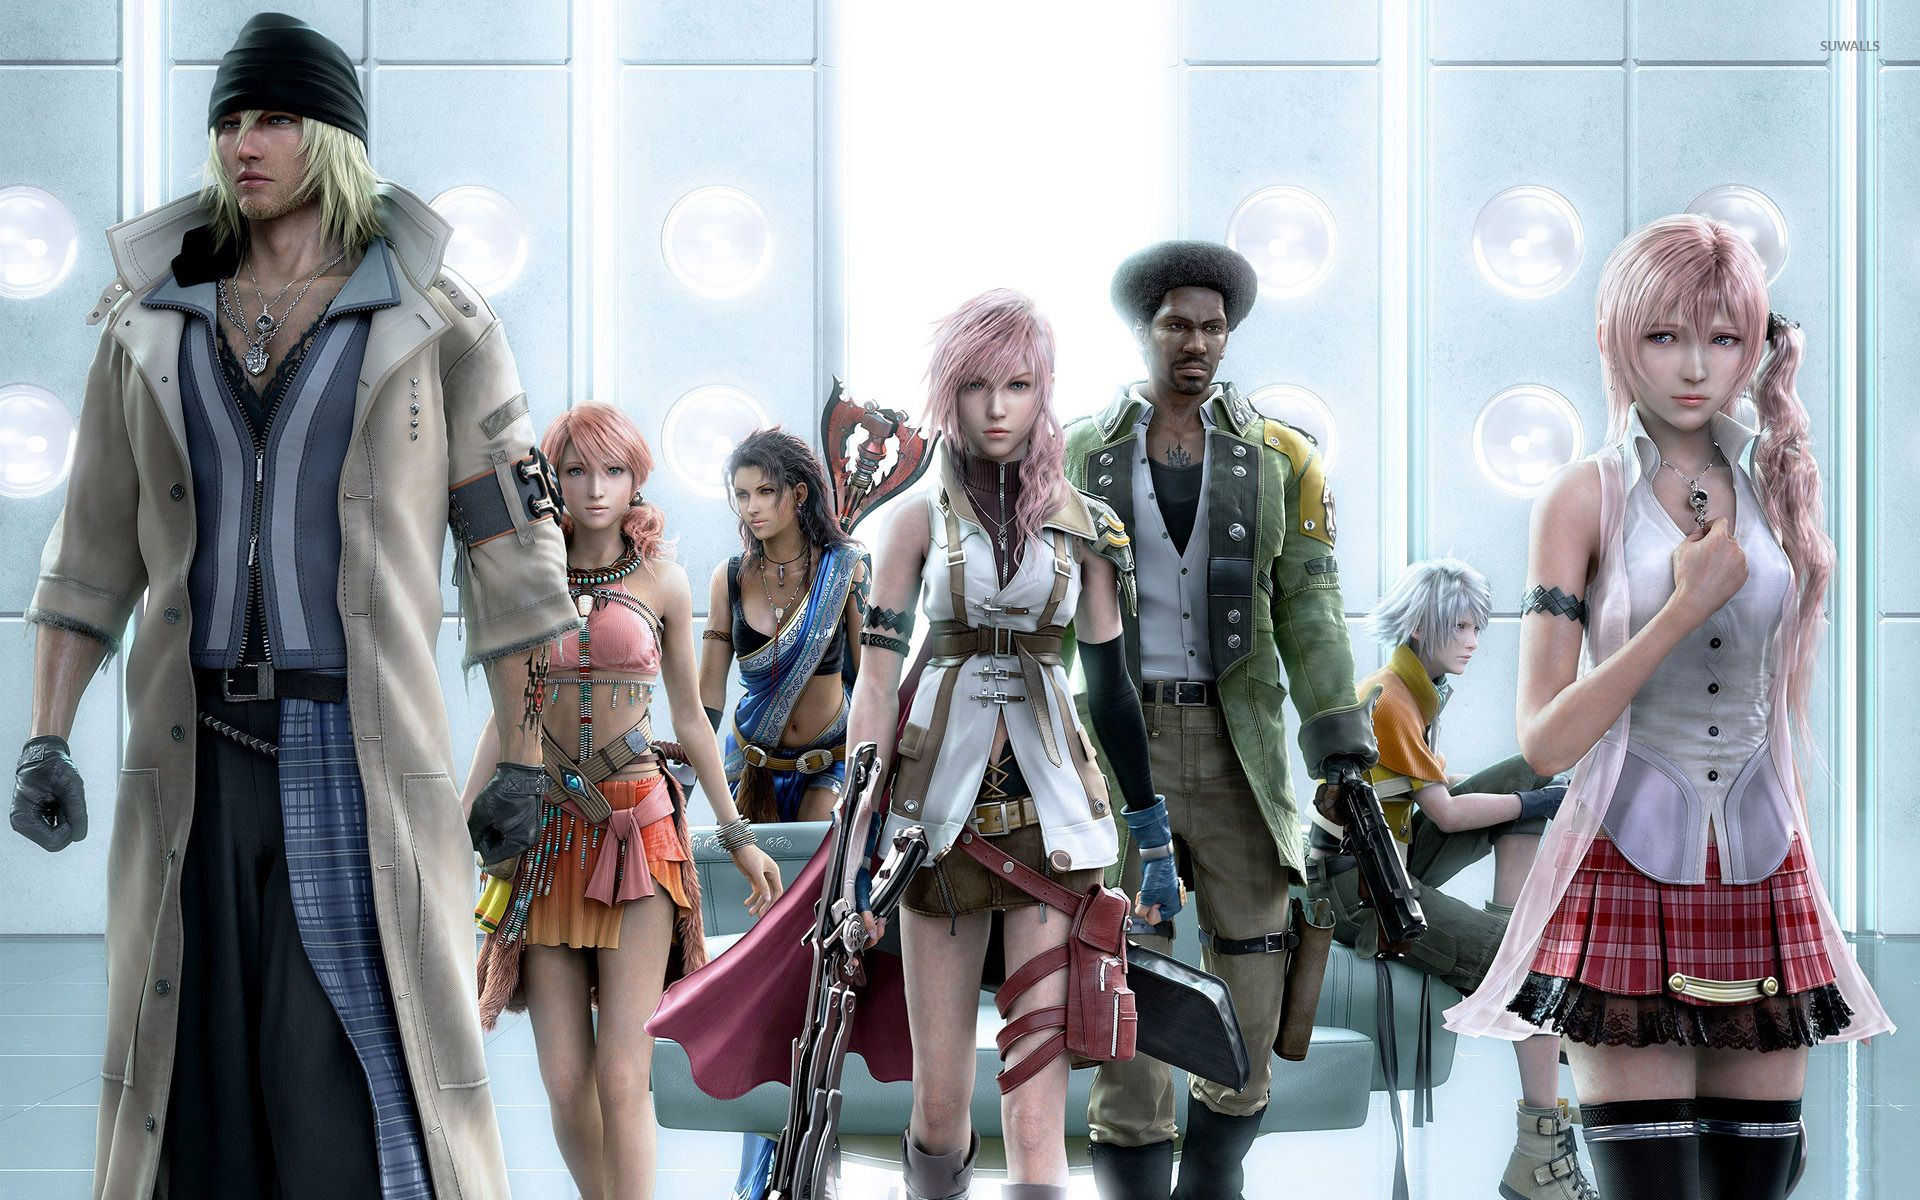 Lightning returns final fantasy xiii hd wallpapers art lightning returns final fantasy xiii hd wallpapers voltagebd Gallery